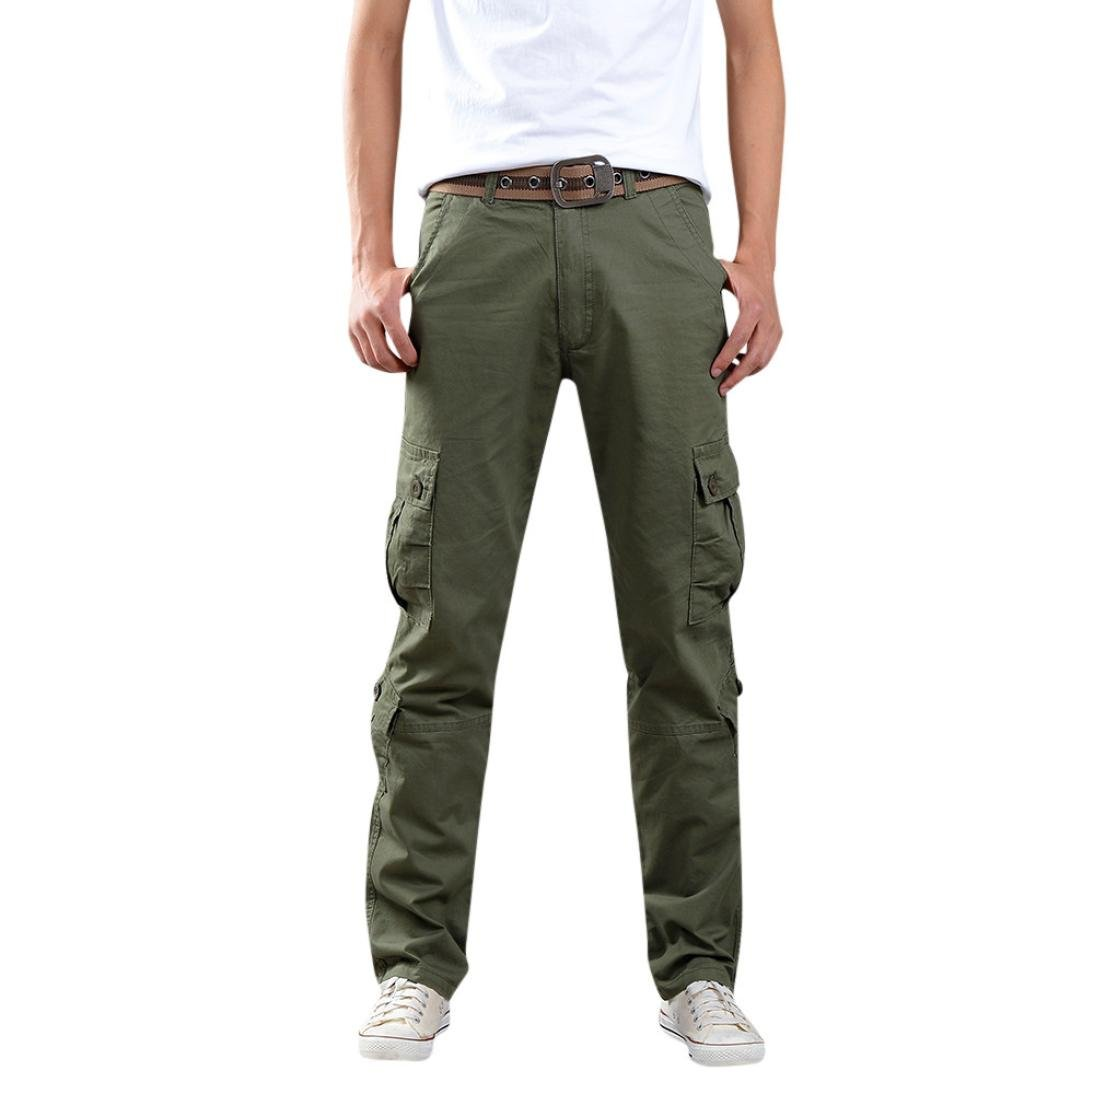 Men Cargo Pants Military,Vanvler Male Trousers Combat Zipper Work Pants with Multi-pocket Clearance (Army Green, 32)